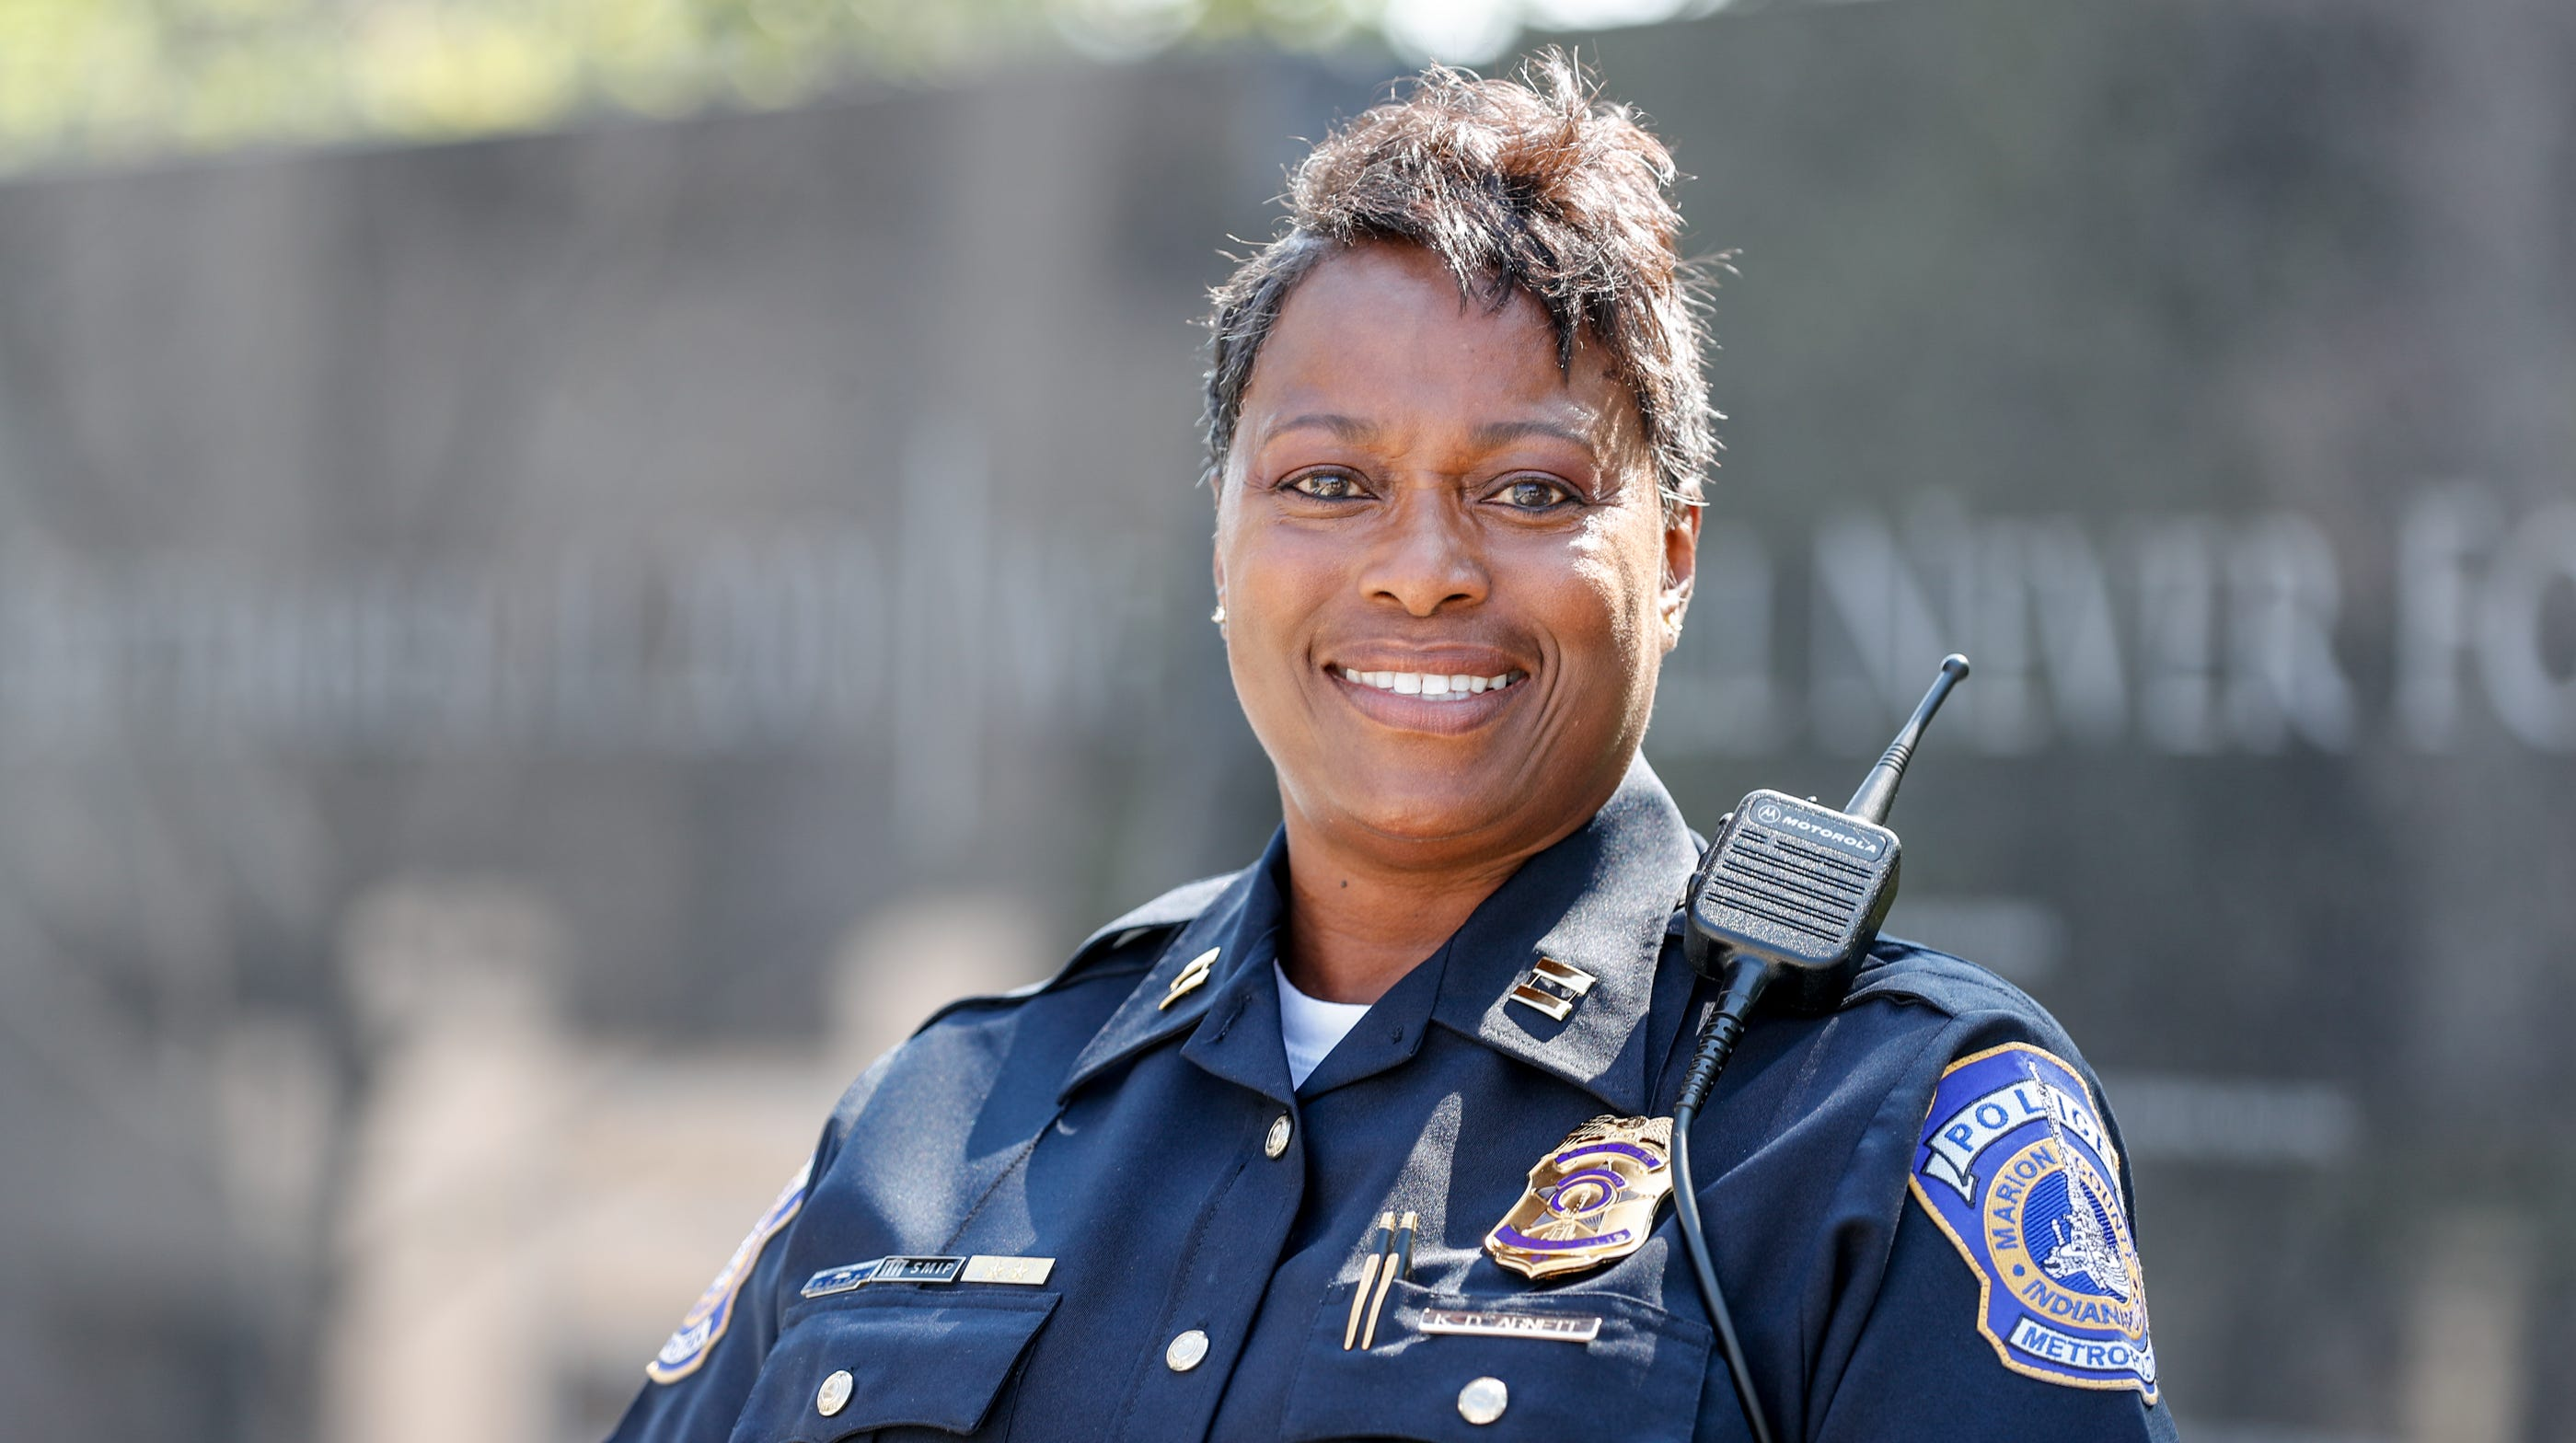 IMPD promotions reflect effort by department to become more diverse